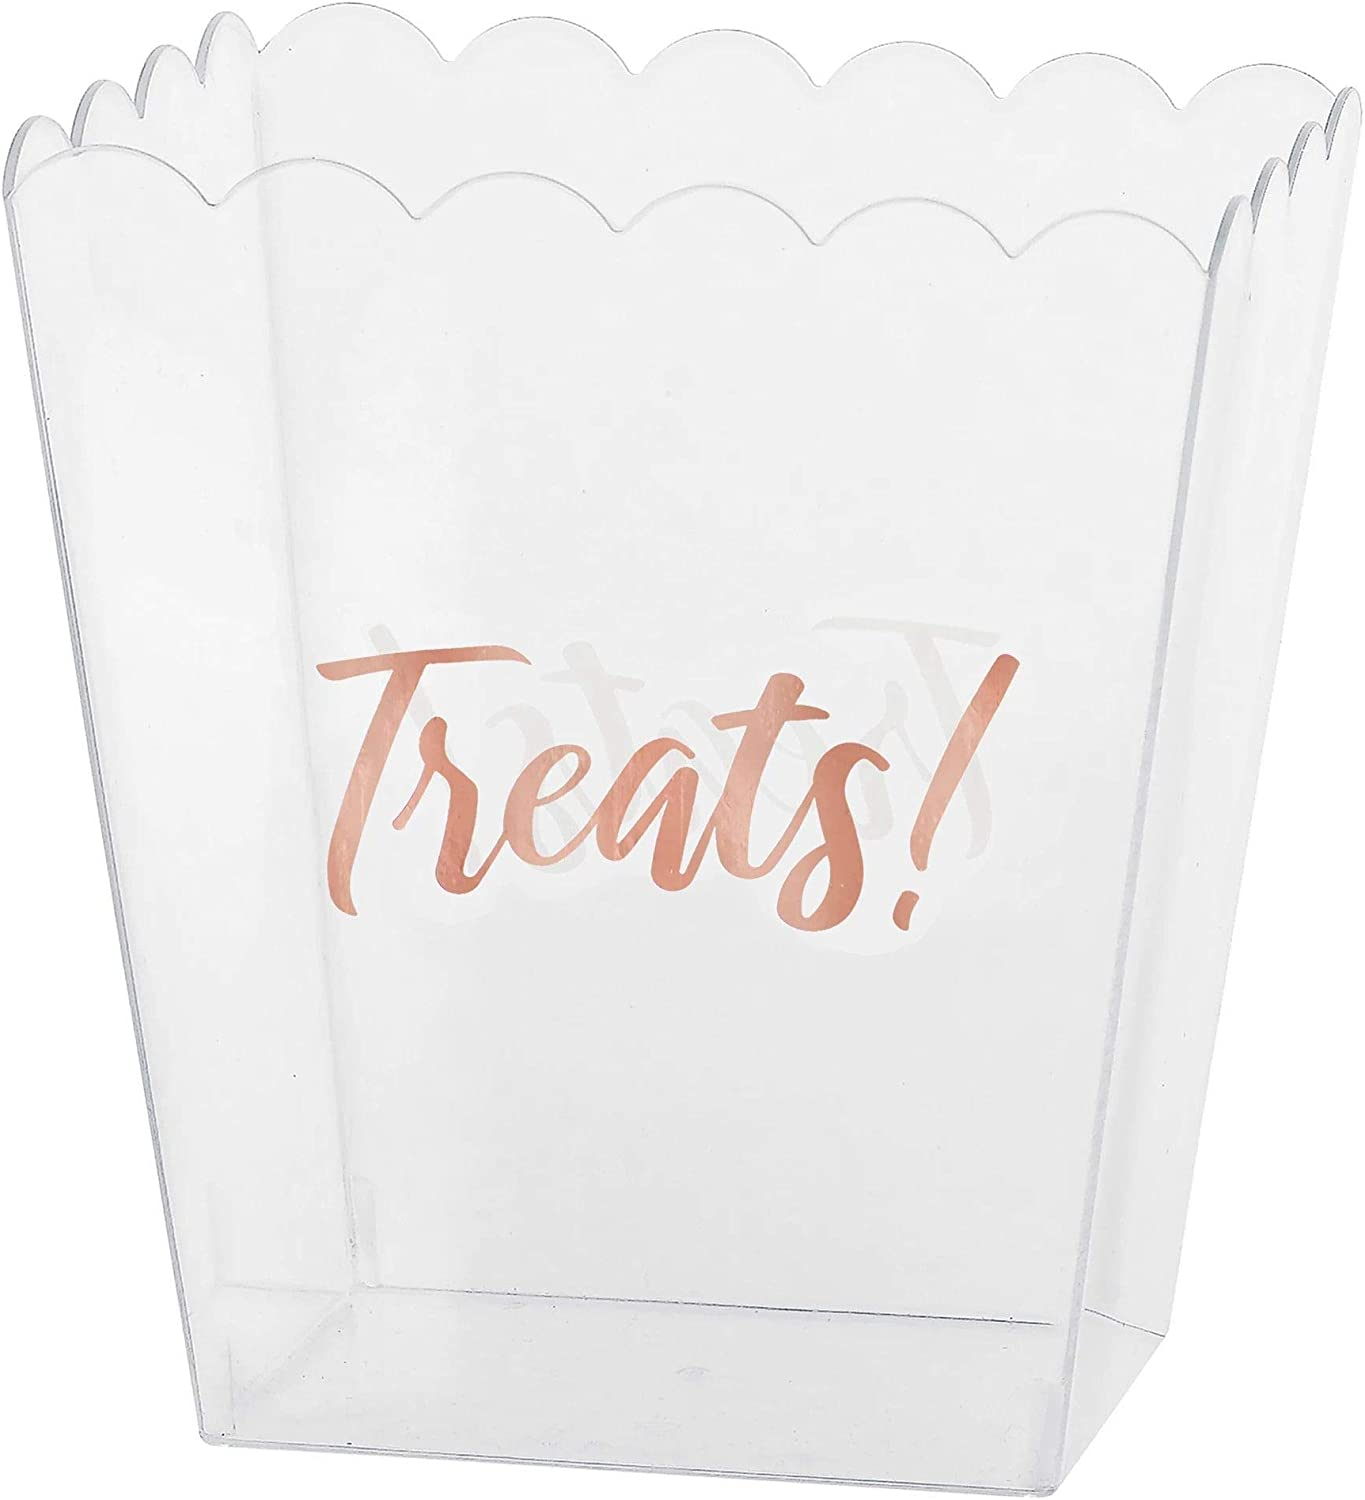 New Orleans Mall Treats Scallop Clear Plastic Container 6